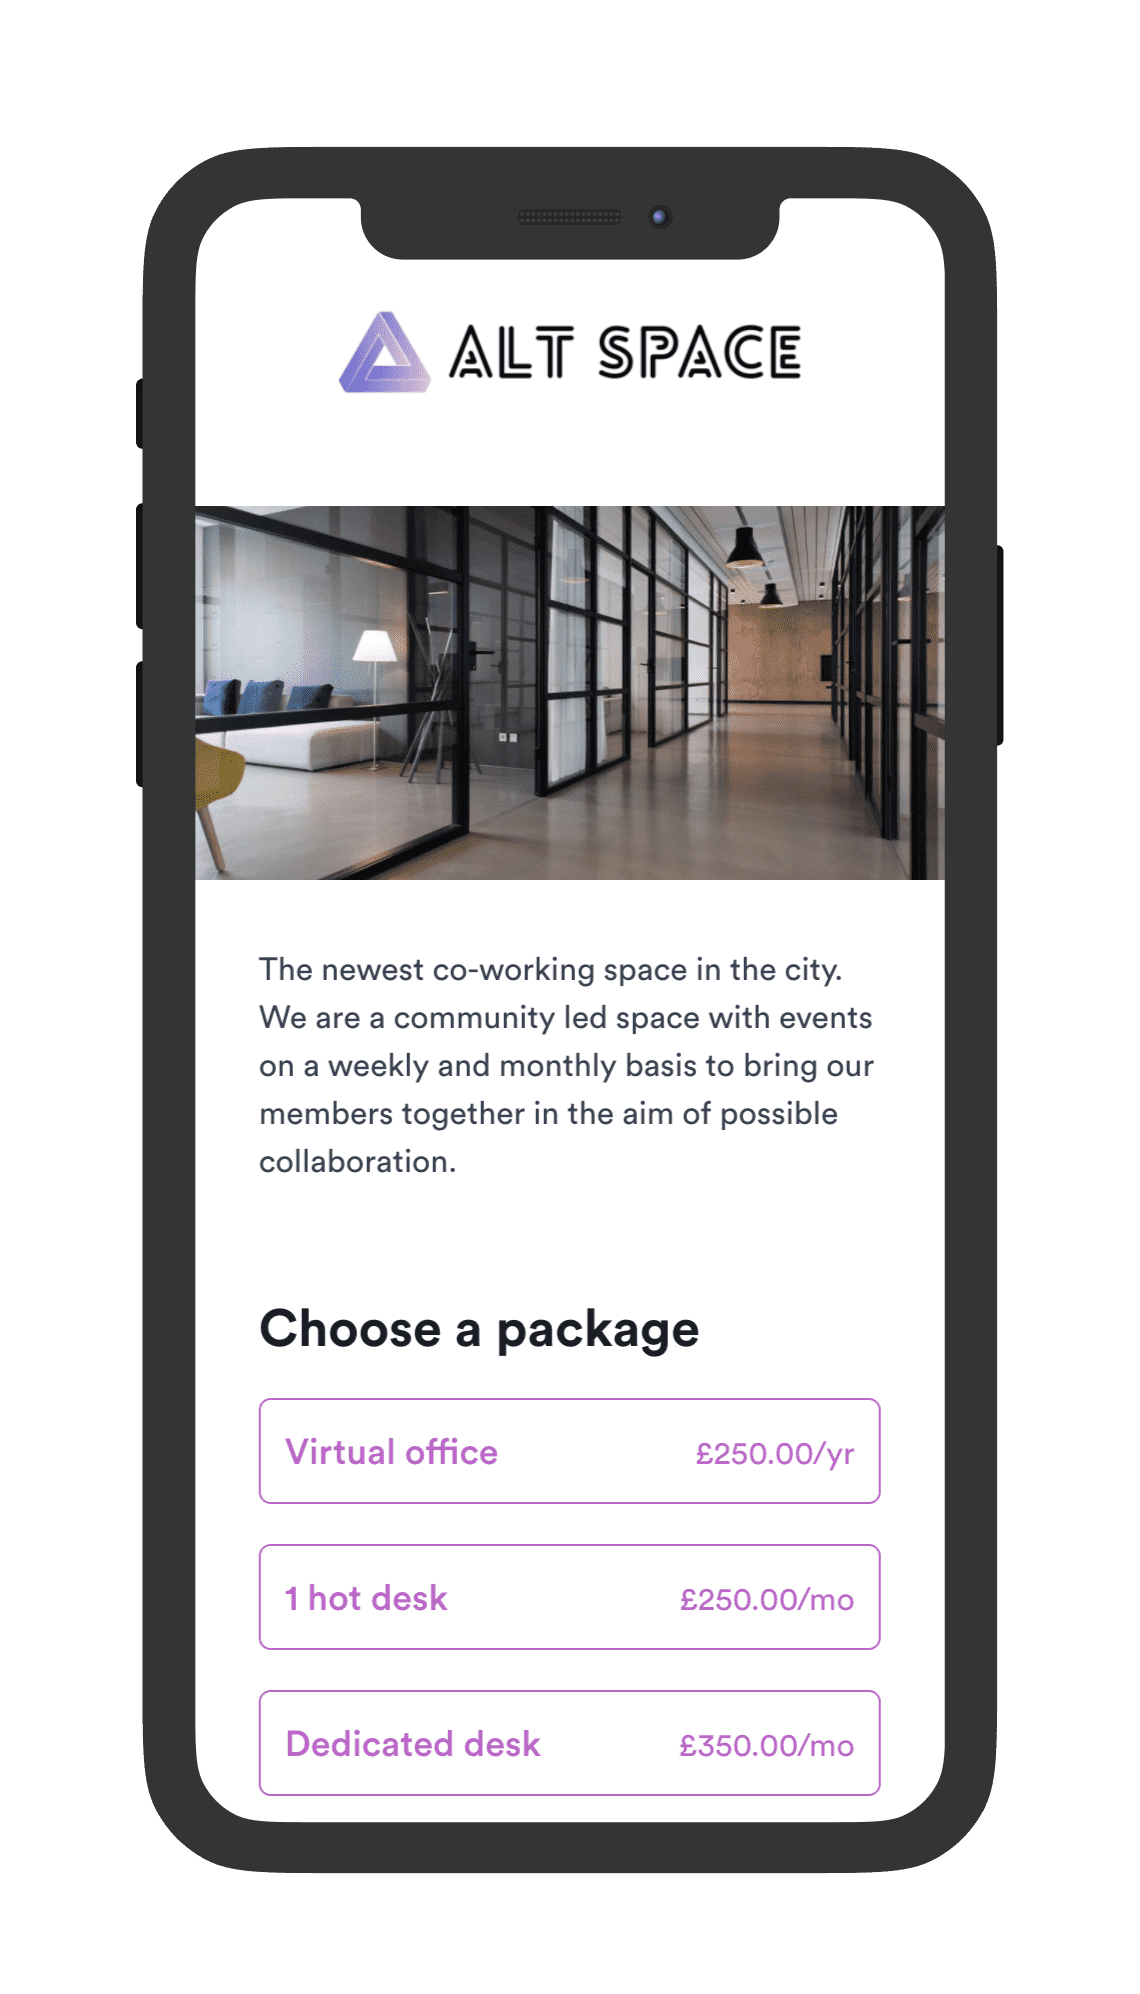 Payhere for Co-working